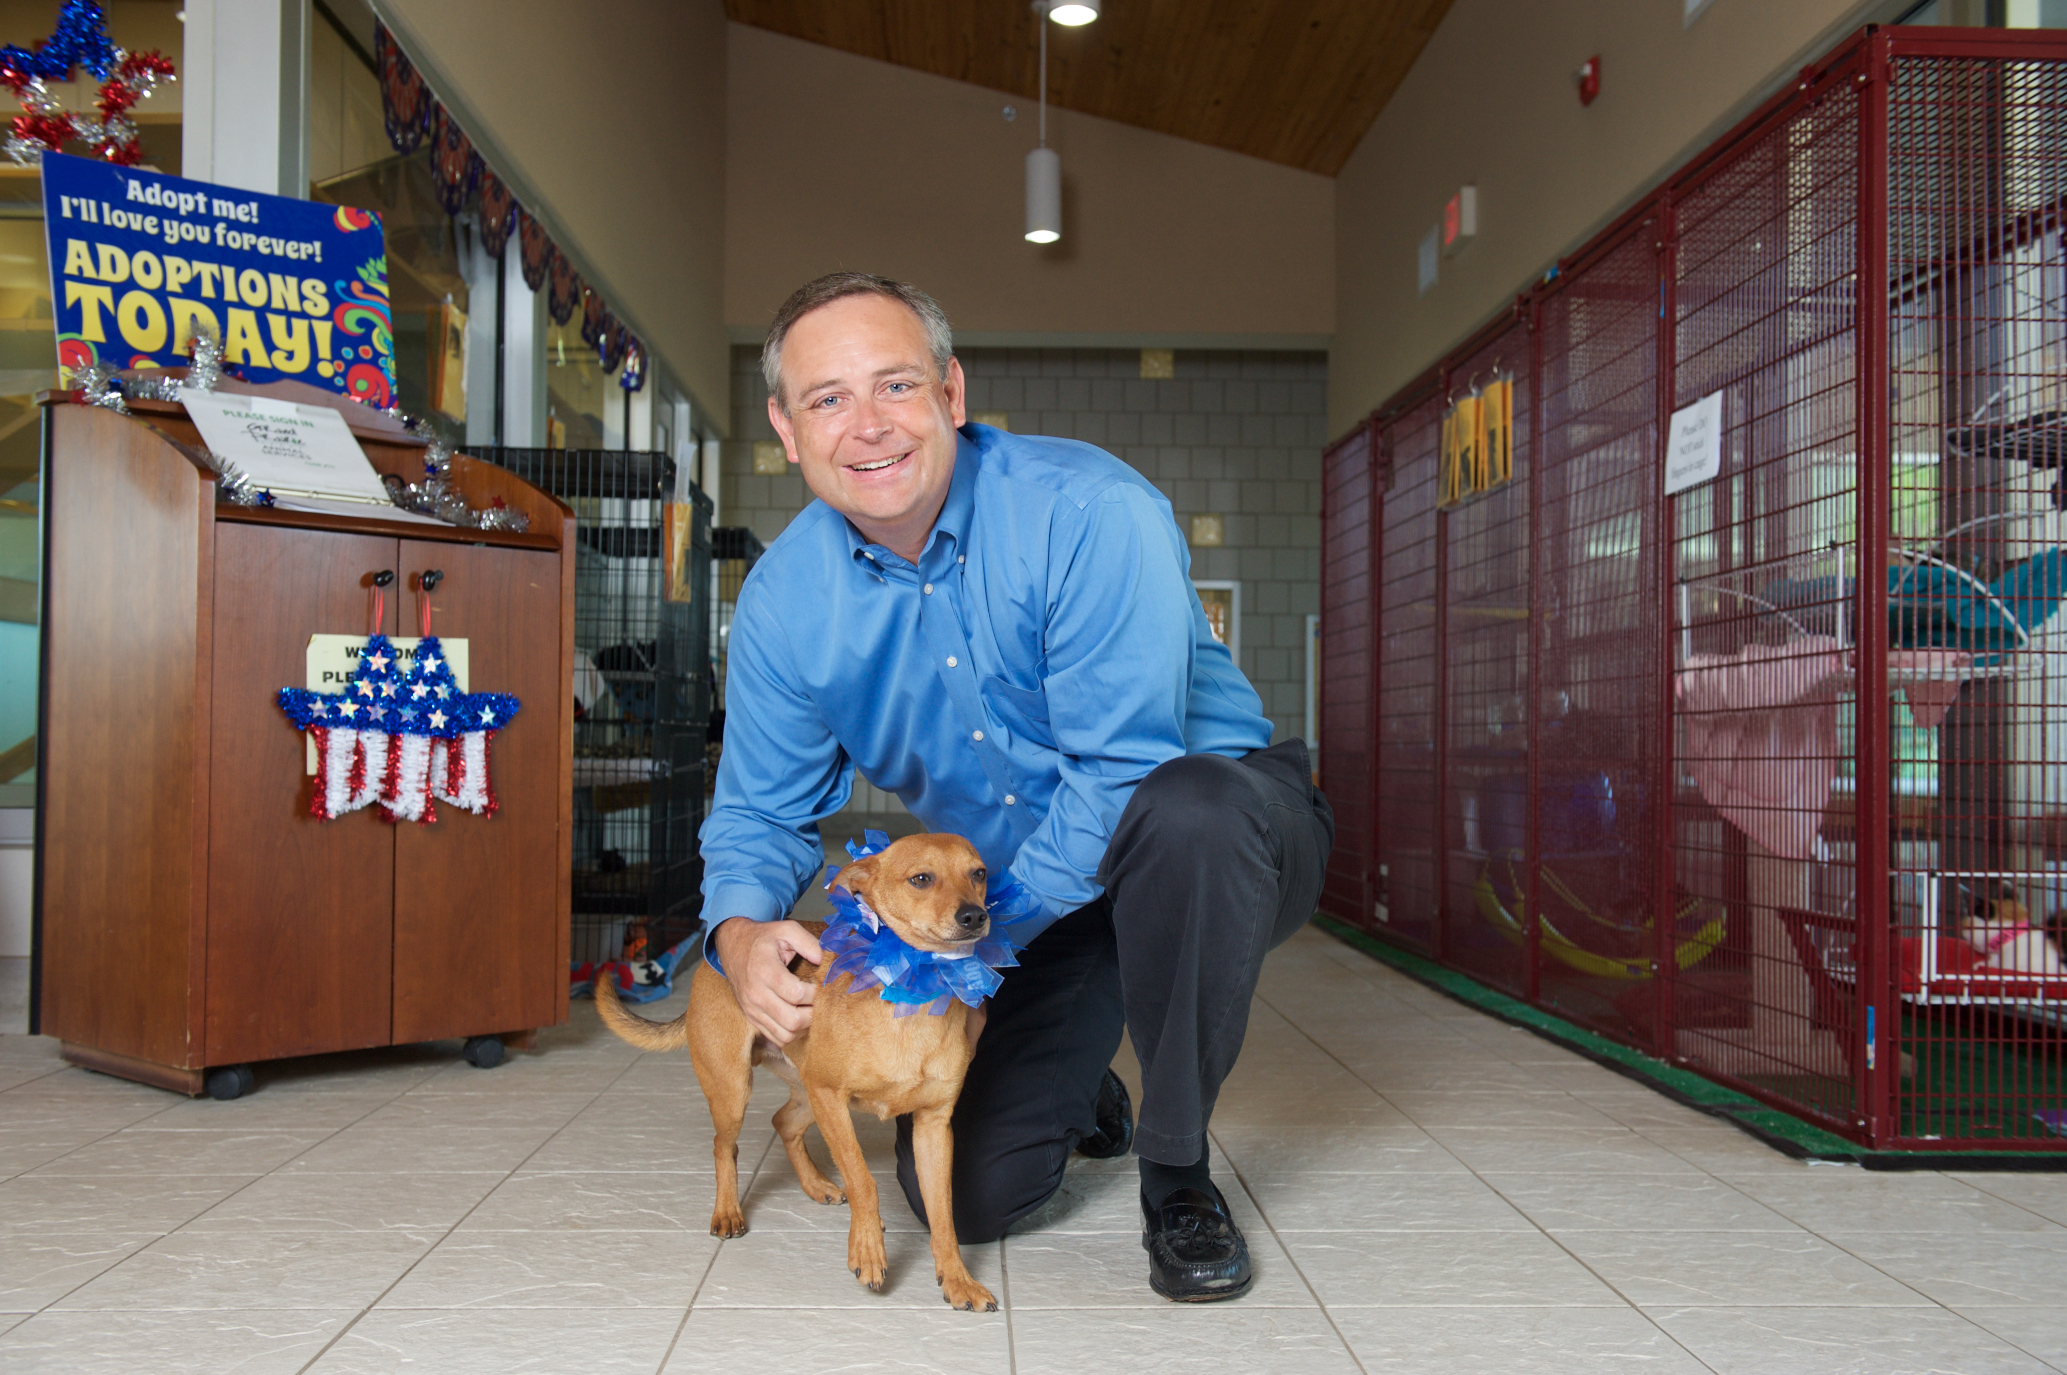 Texas Rep. Partners with Prairie Paws Animal Shelter to Promote $4 Adoptions